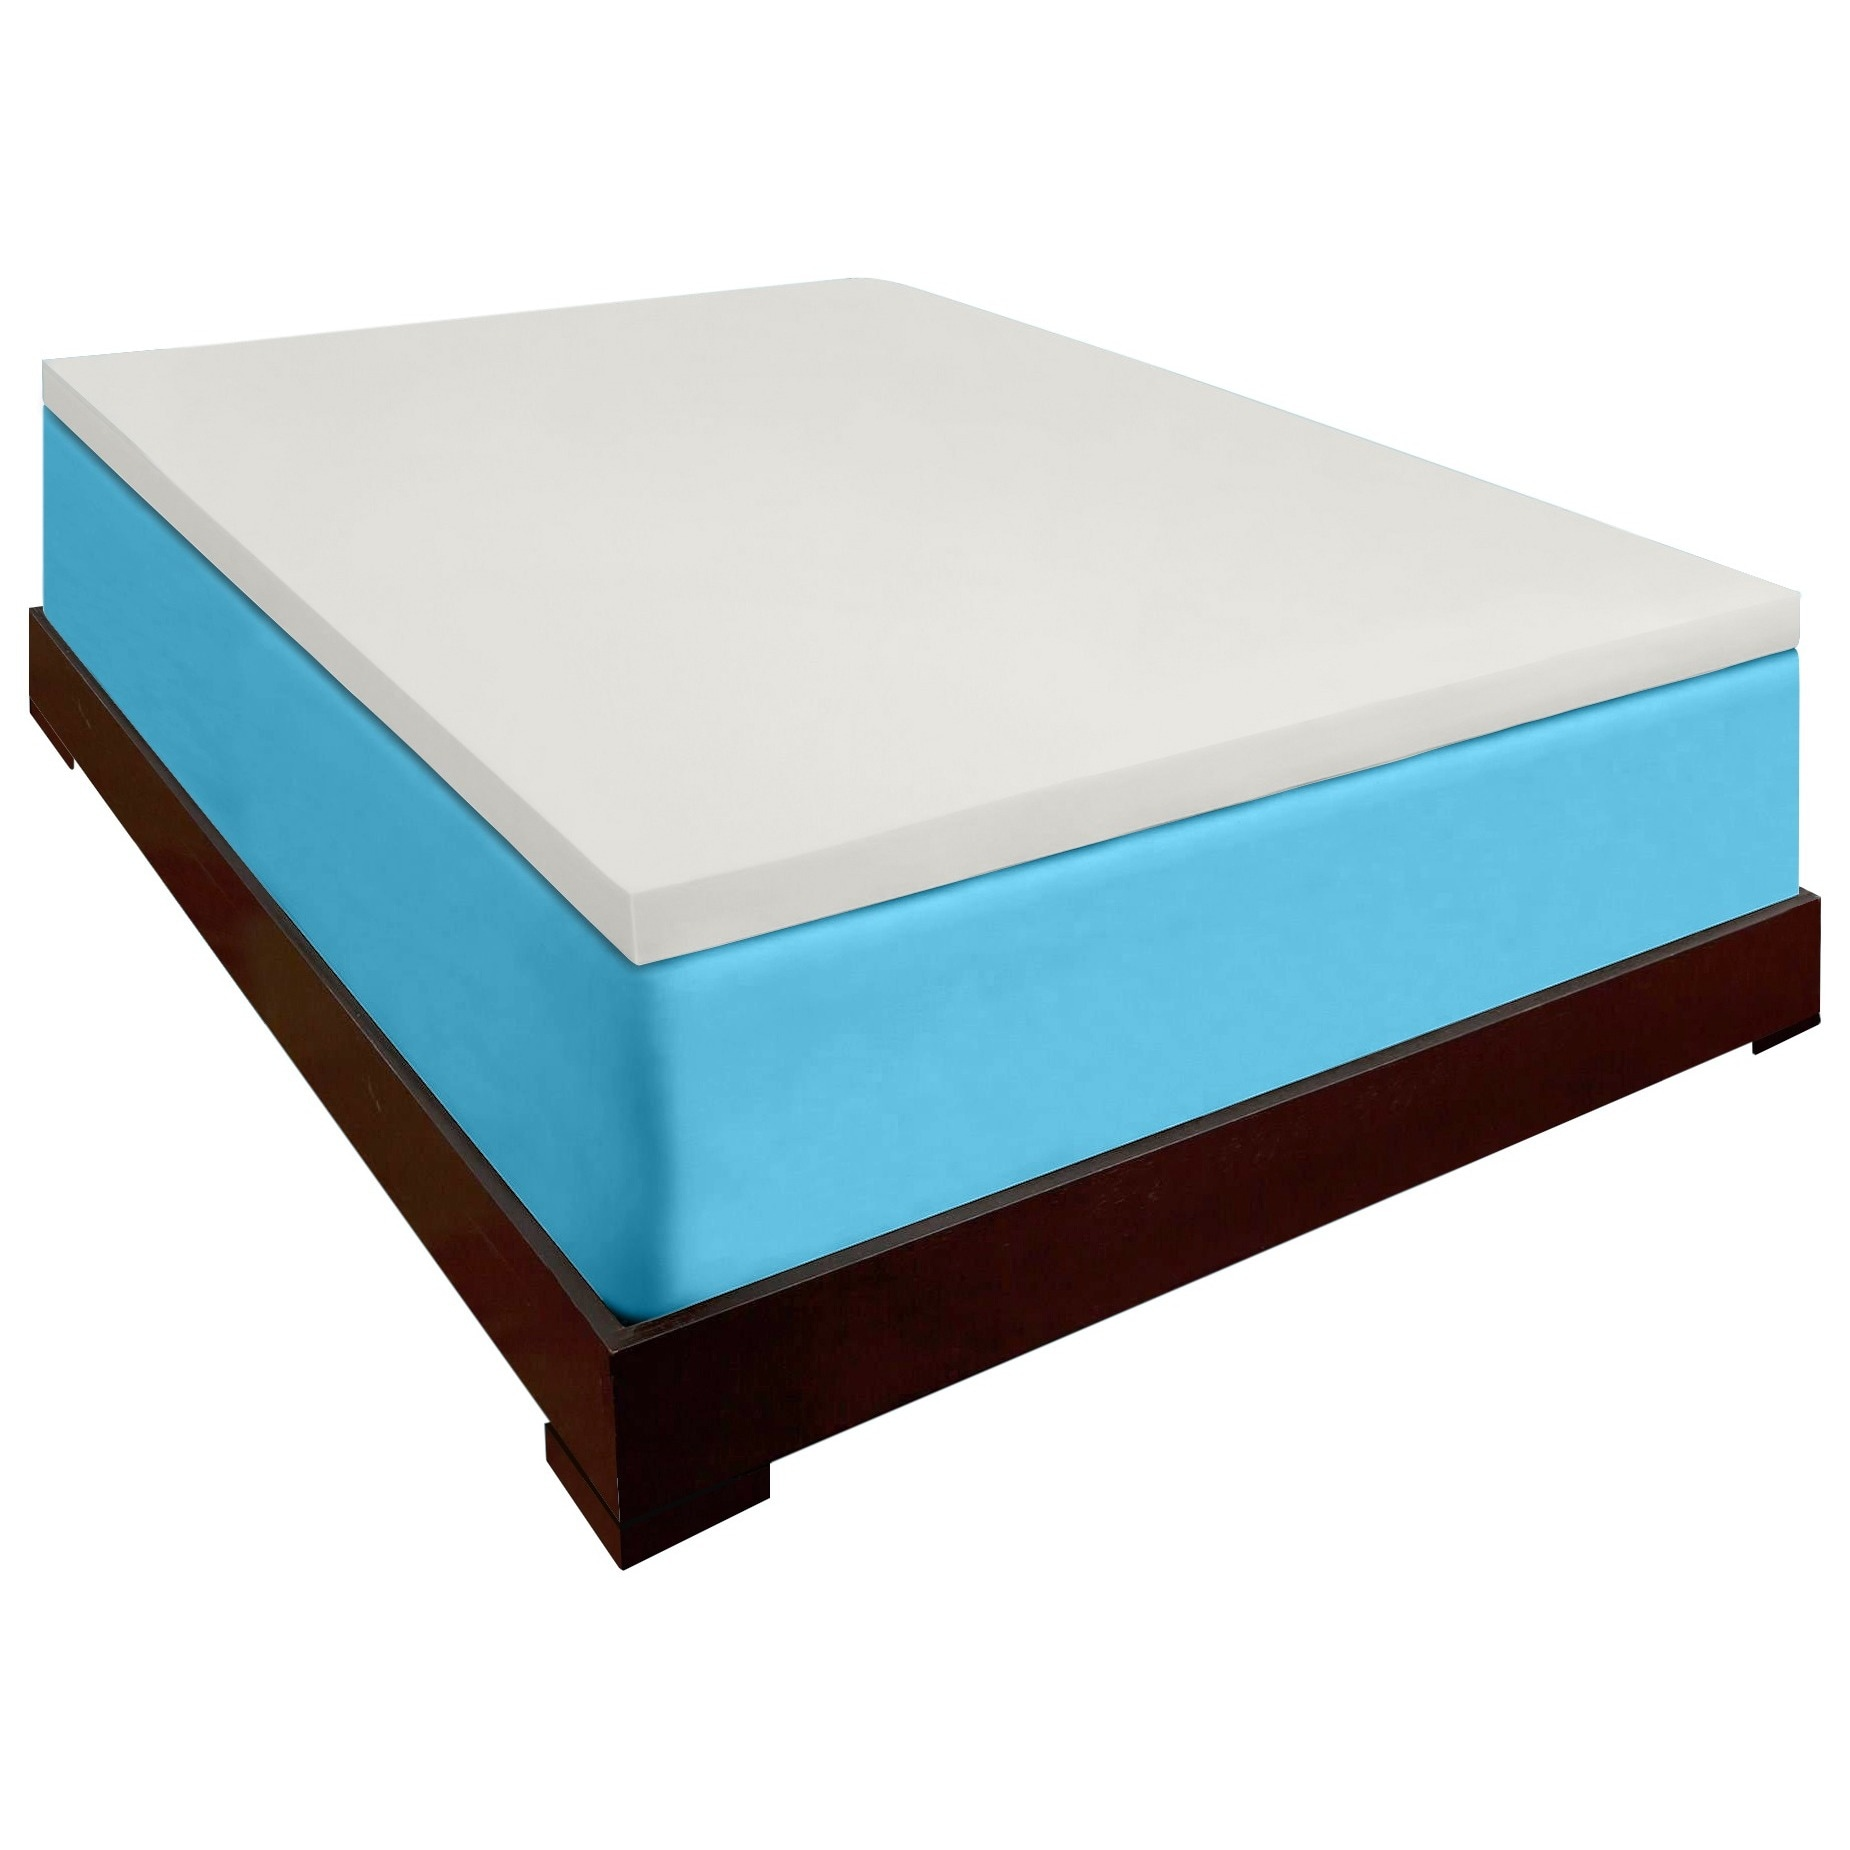 Shop DreamDNA 4 inch 4 pound Density Memory Foam Mattress Topper